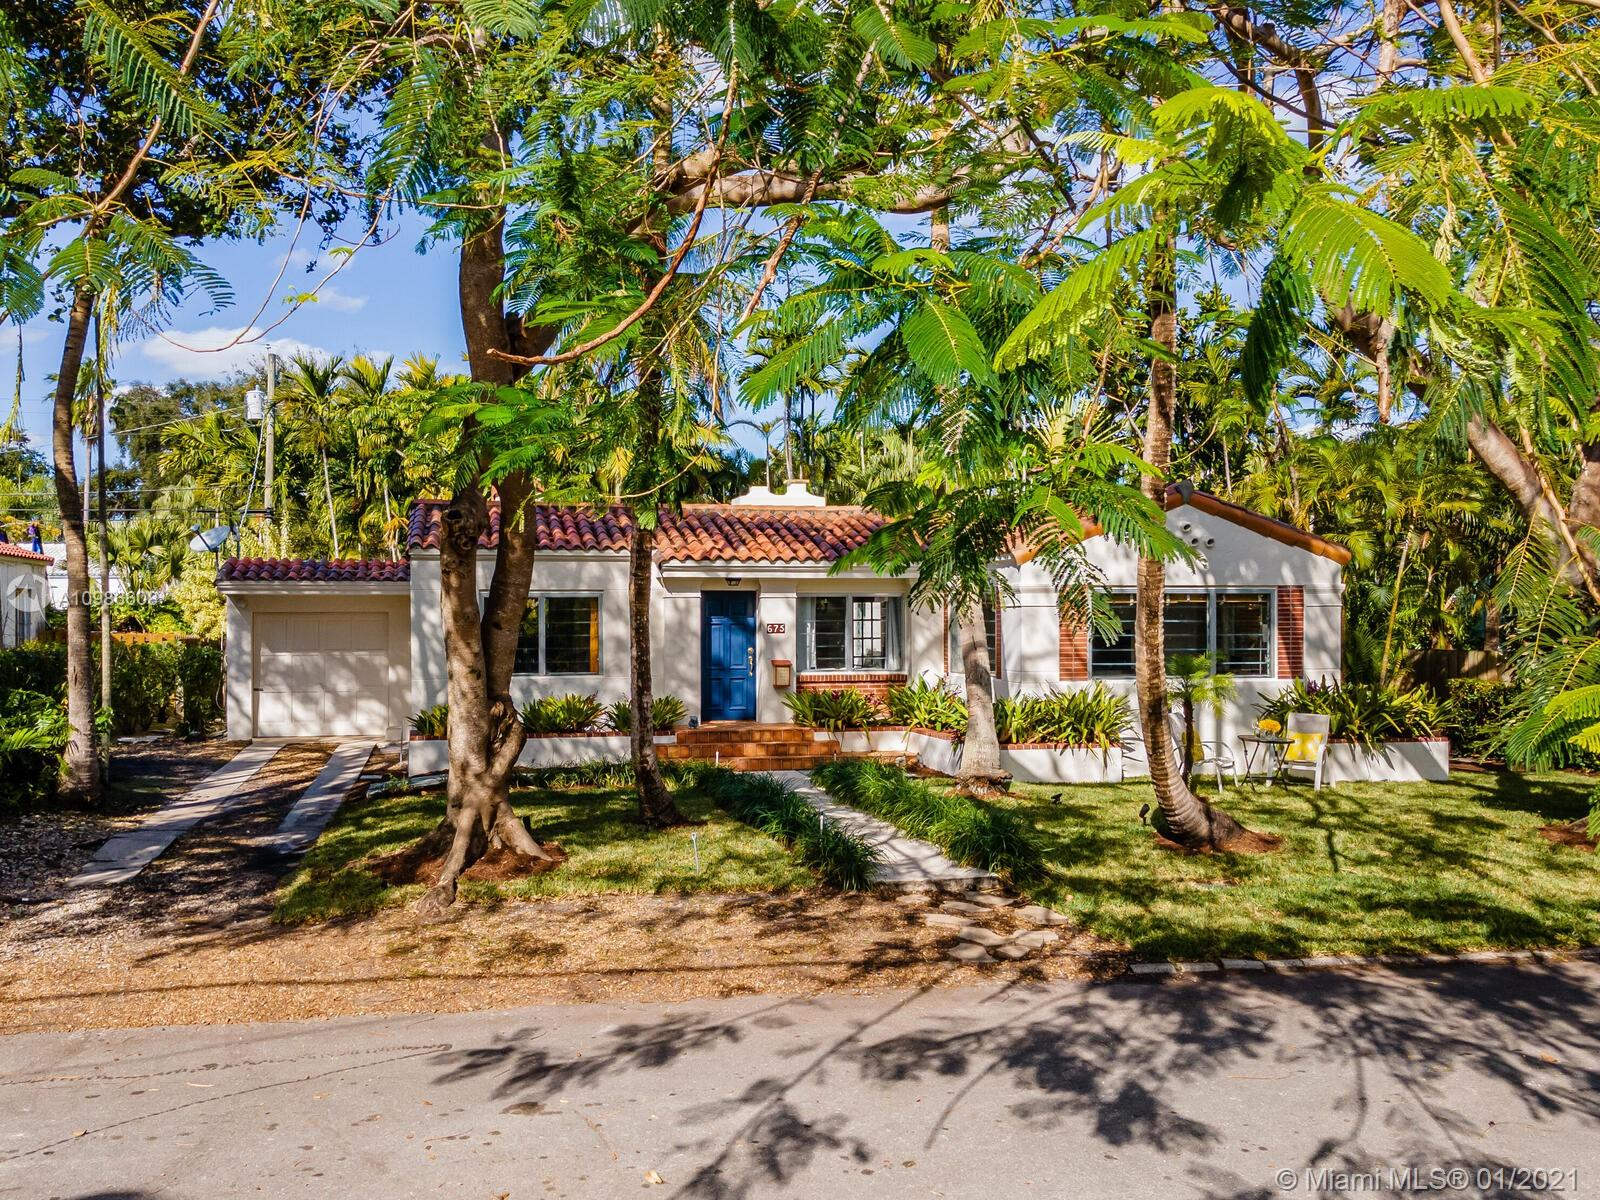 675 NE 71st St, Miami, Florida 33138, 2 Bedrooms Bedrooms, ,1 BathroomBathrooms,Residential,For Sale,675 NE 71st St,A10986608